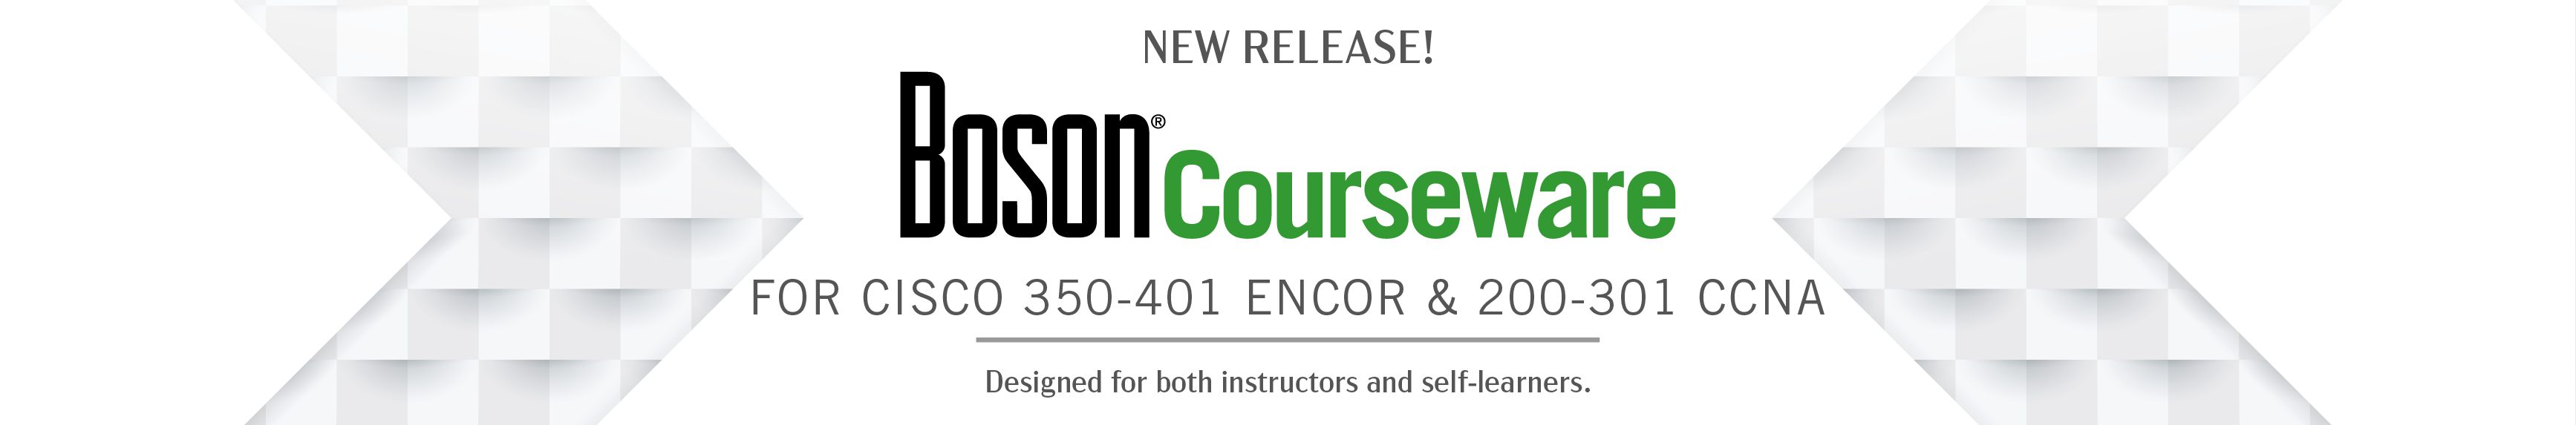 ENCOR Courseware